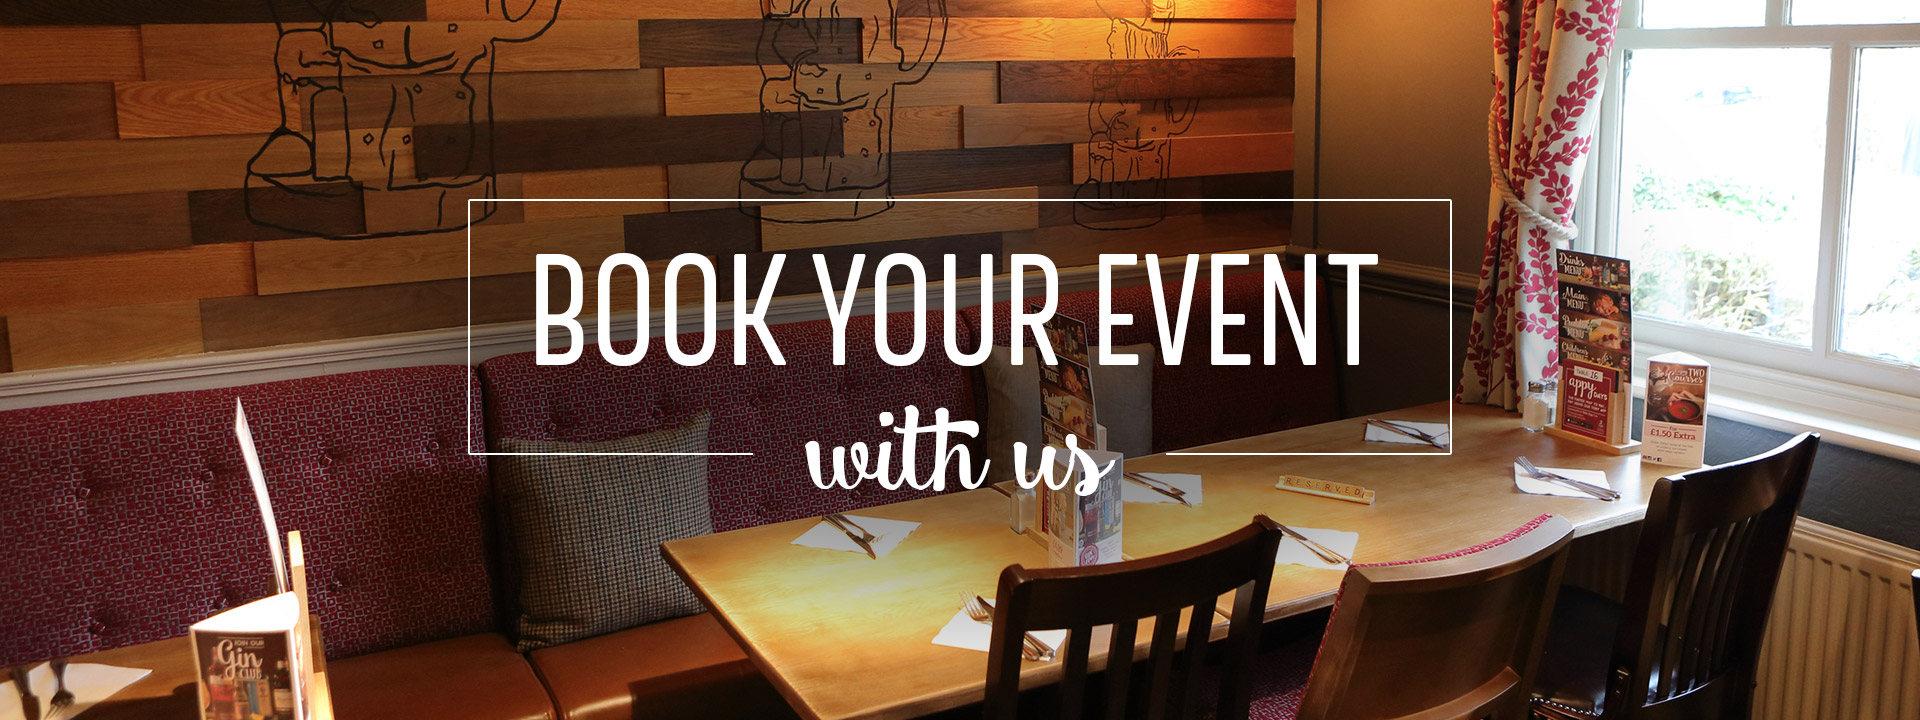 Events at Toby Carvery Old Forge